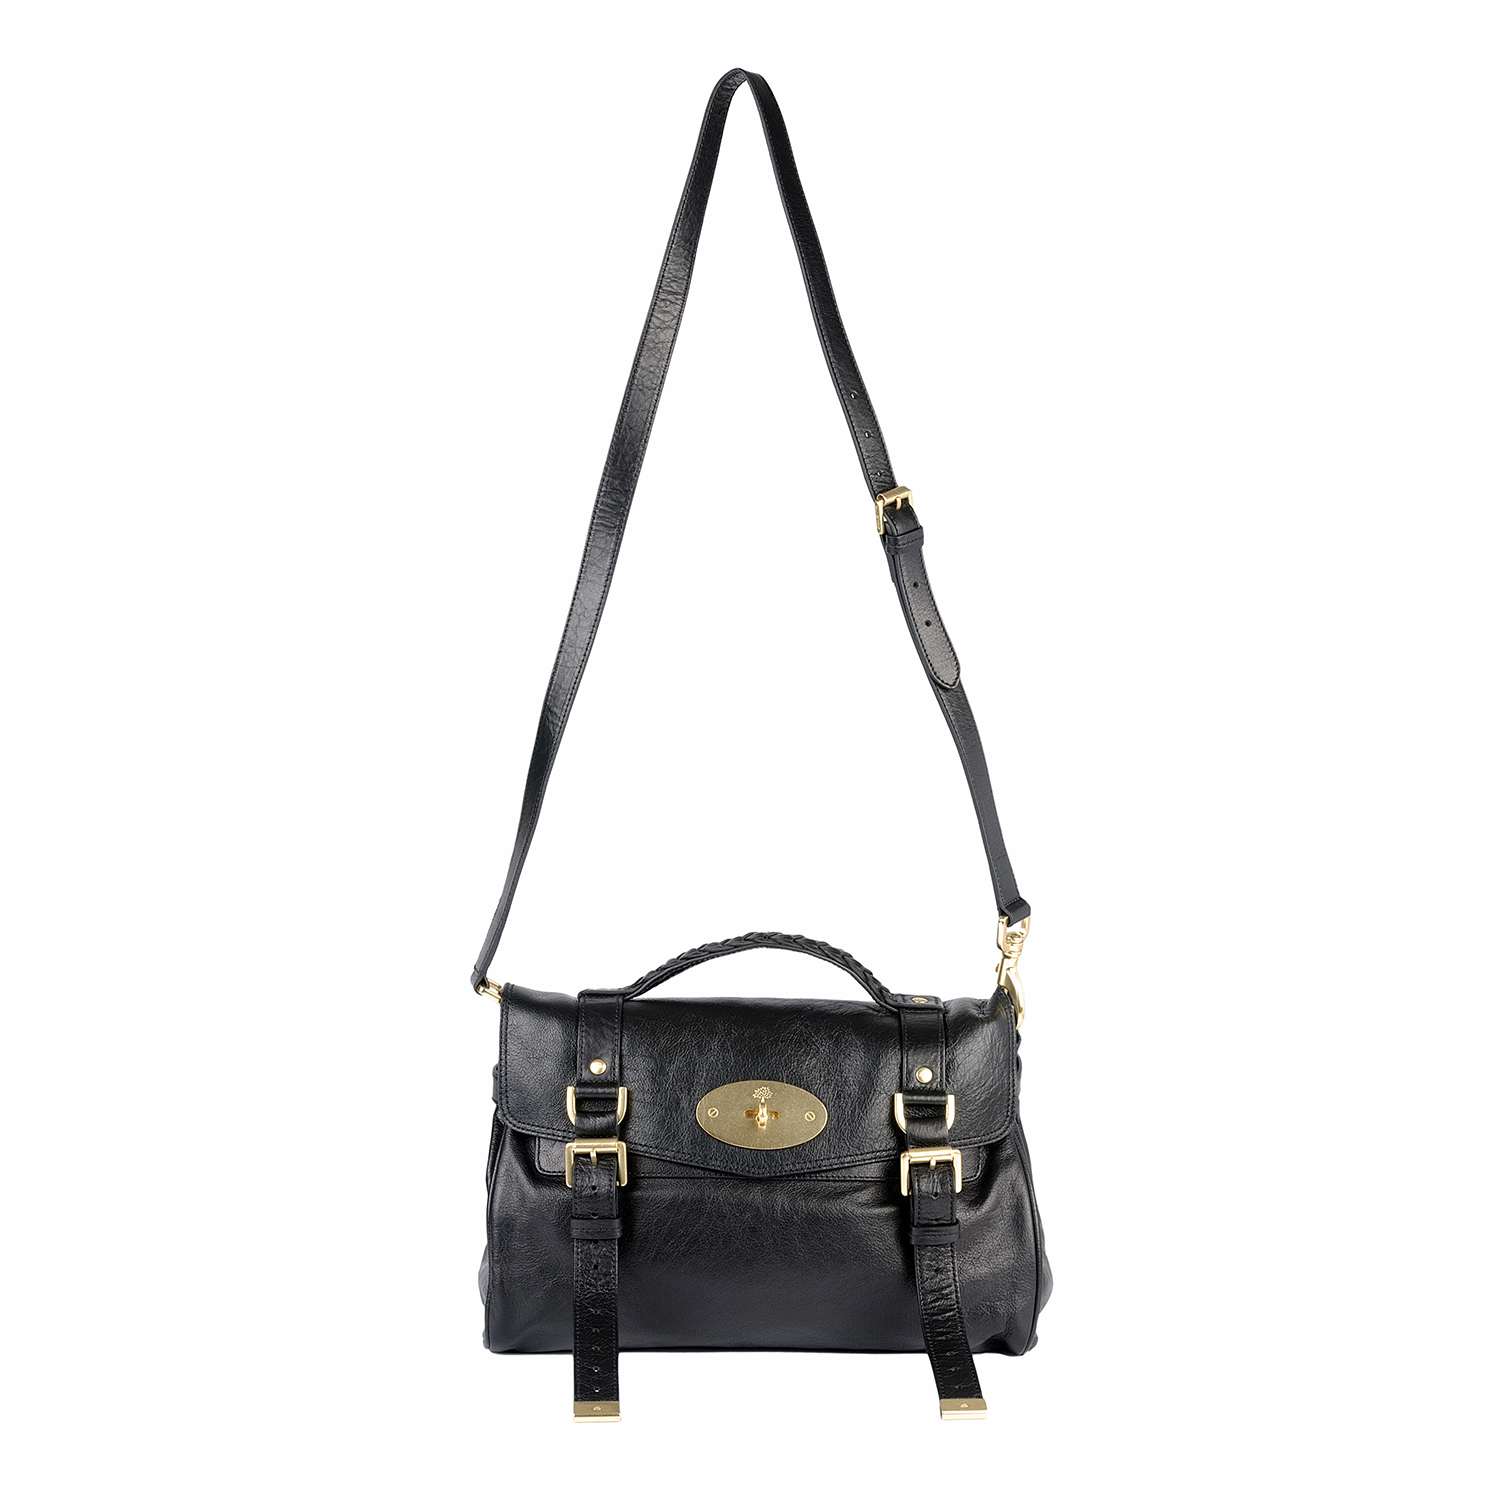 Handbag for rent Mulberry Alexa - Rent Fashion Bag ea7666b44a142